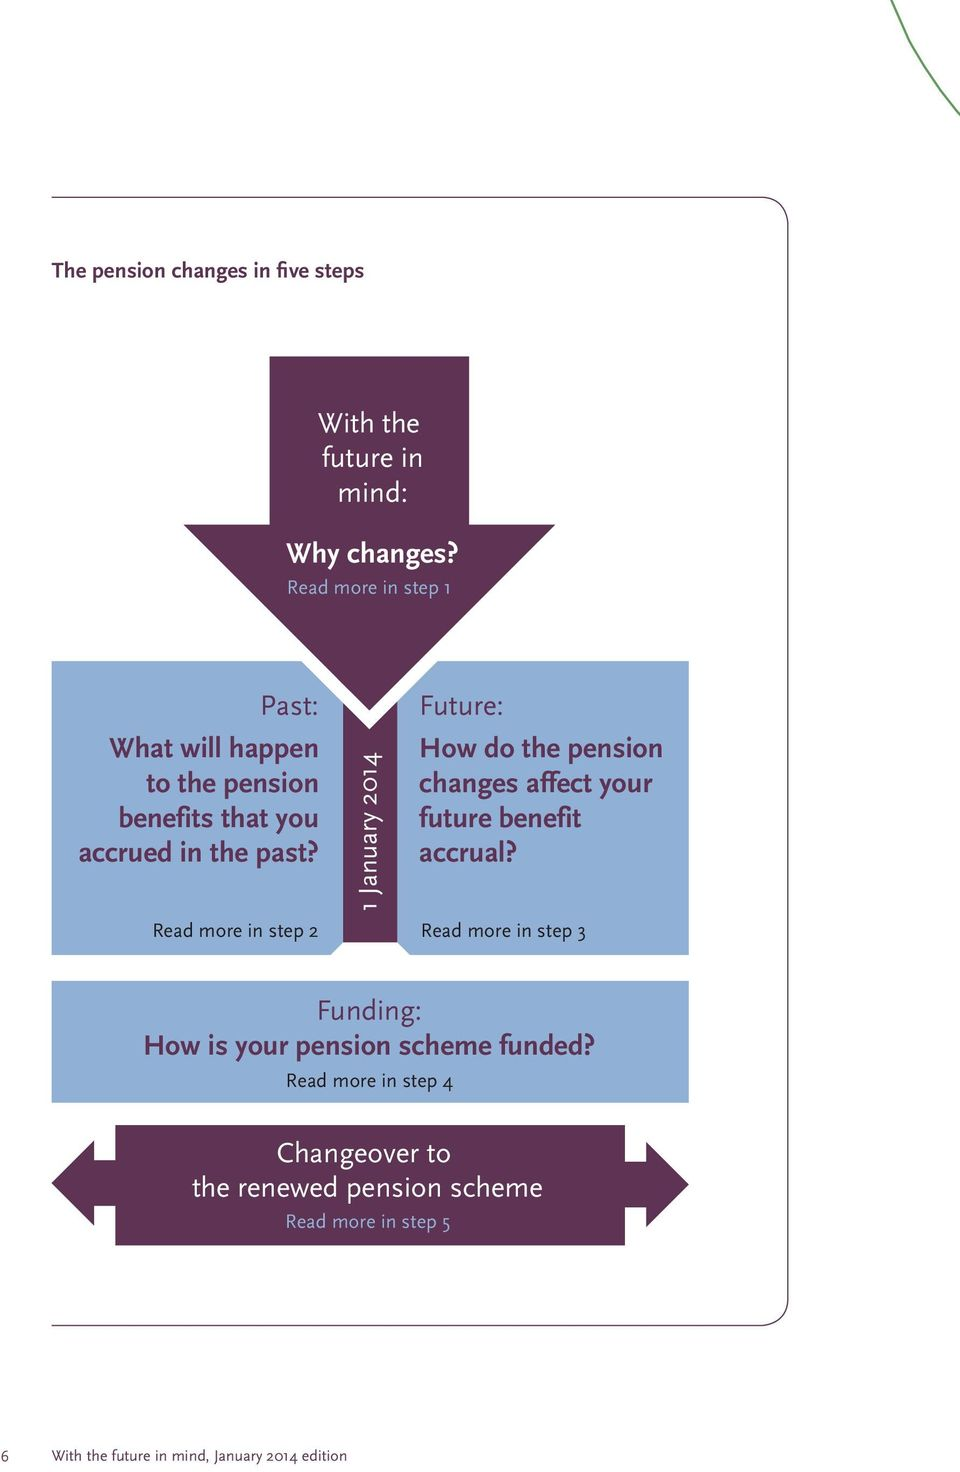 1 January 2014 Future: How do the pension changes affect your future benefit accrual?